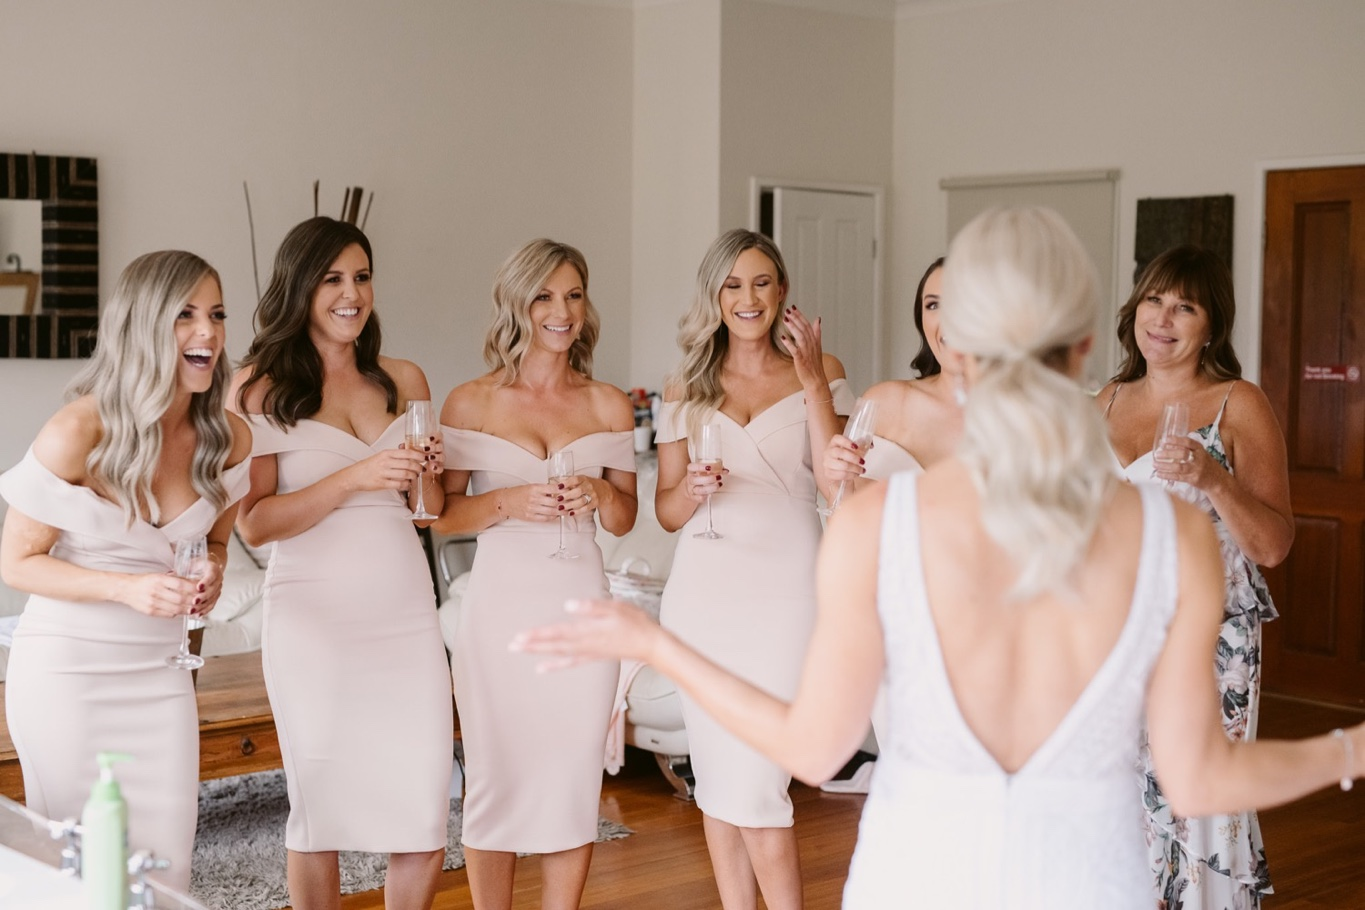 Immerse Yarra Valley Winery Wedding Photography39.jpg